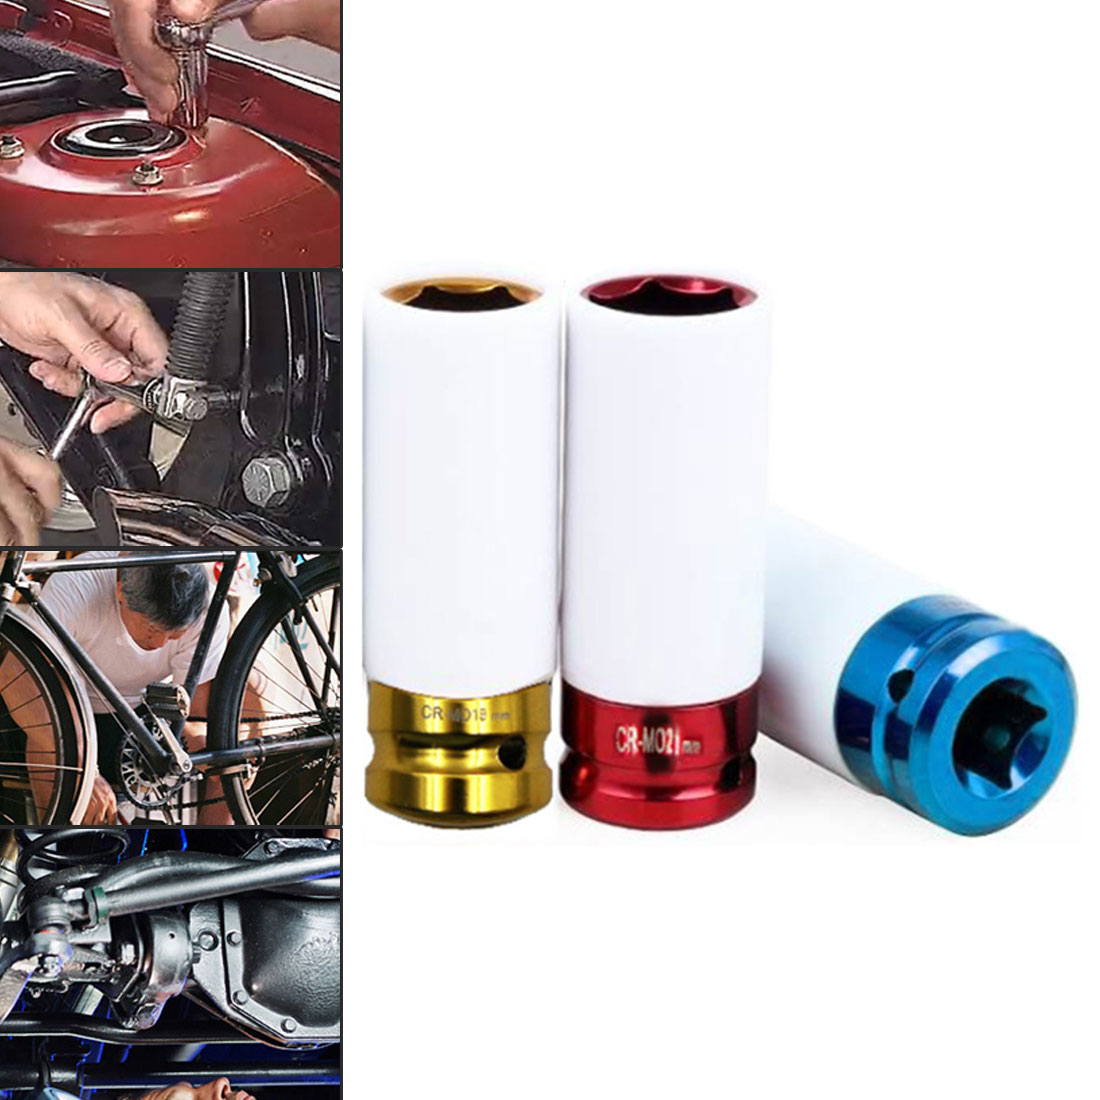 1pc Colorful Sleeve Tire Protection Sleeve Wall Deep Impact Nut Socket High-carbon Steel Wheel 17mm/19mm/ 21mm 1pc Colorful Sleeve Tire Protection Sleeve Wall Deep Impact Nut Socket High-carbon Steel Wheel 17mm/19mm/ 21mm